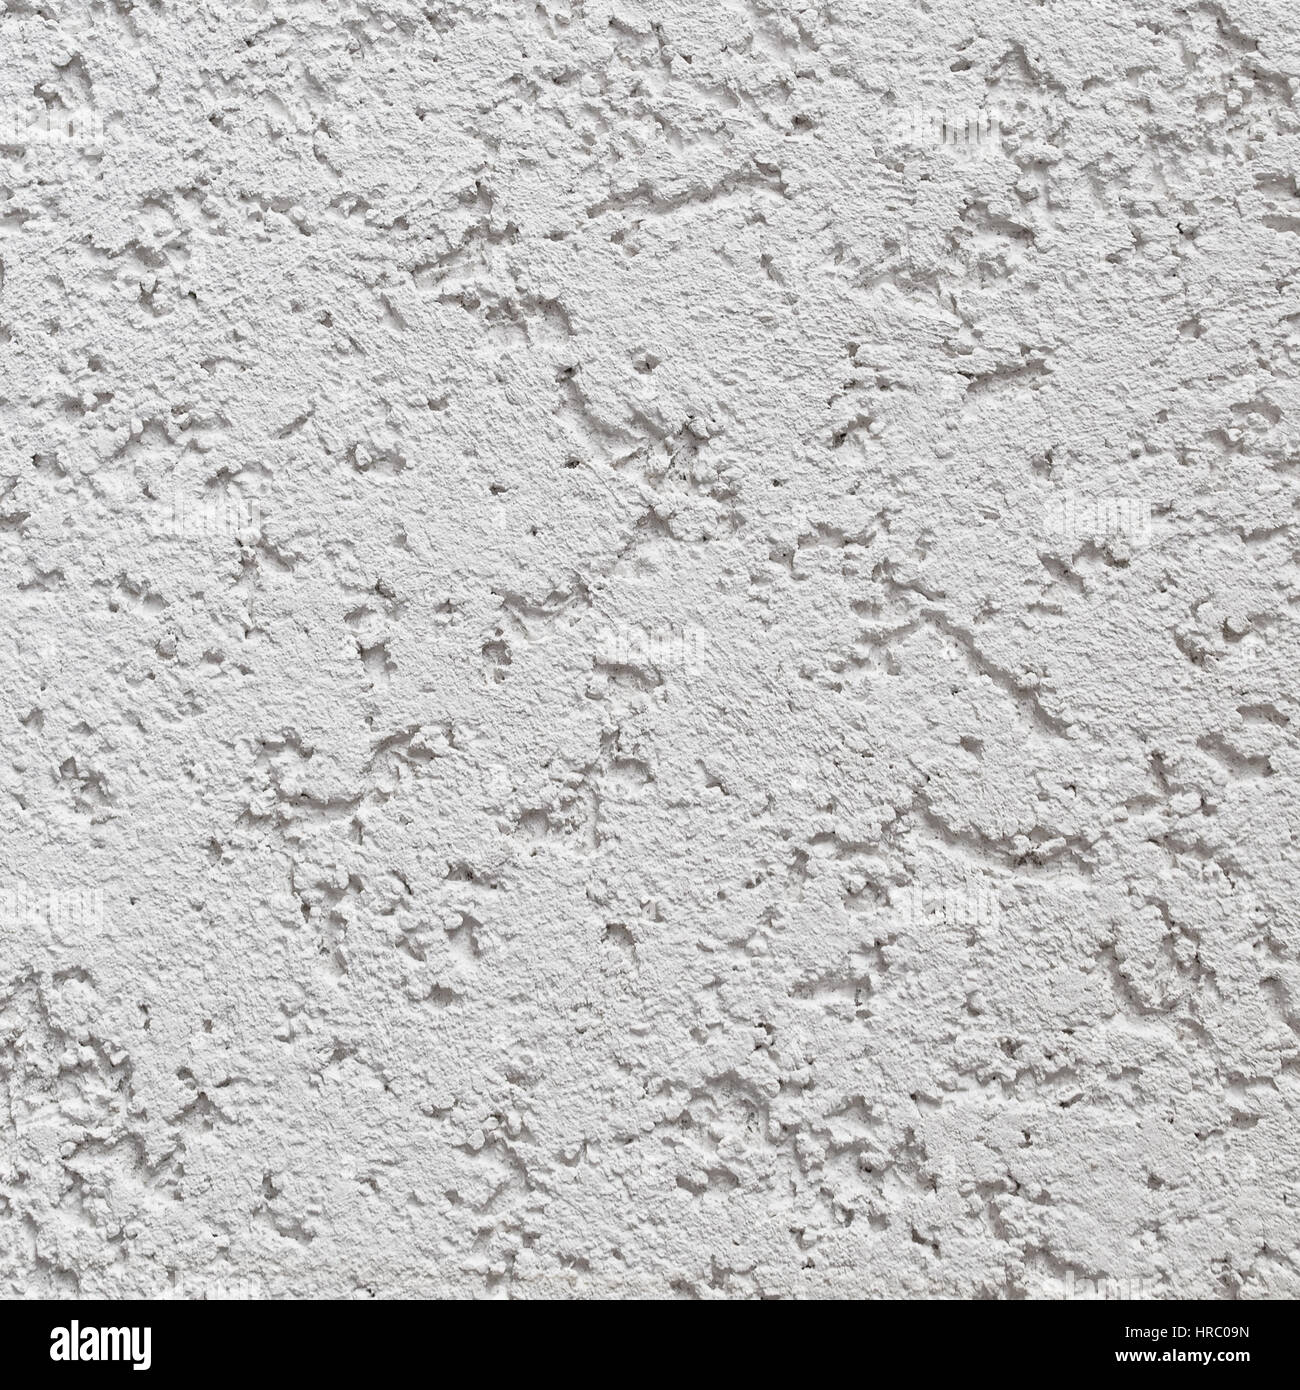 Bright Gray Wall Stucco Texture Detailed Natural Coarse Rustic Textured Background Closeup Concrete Copy Space